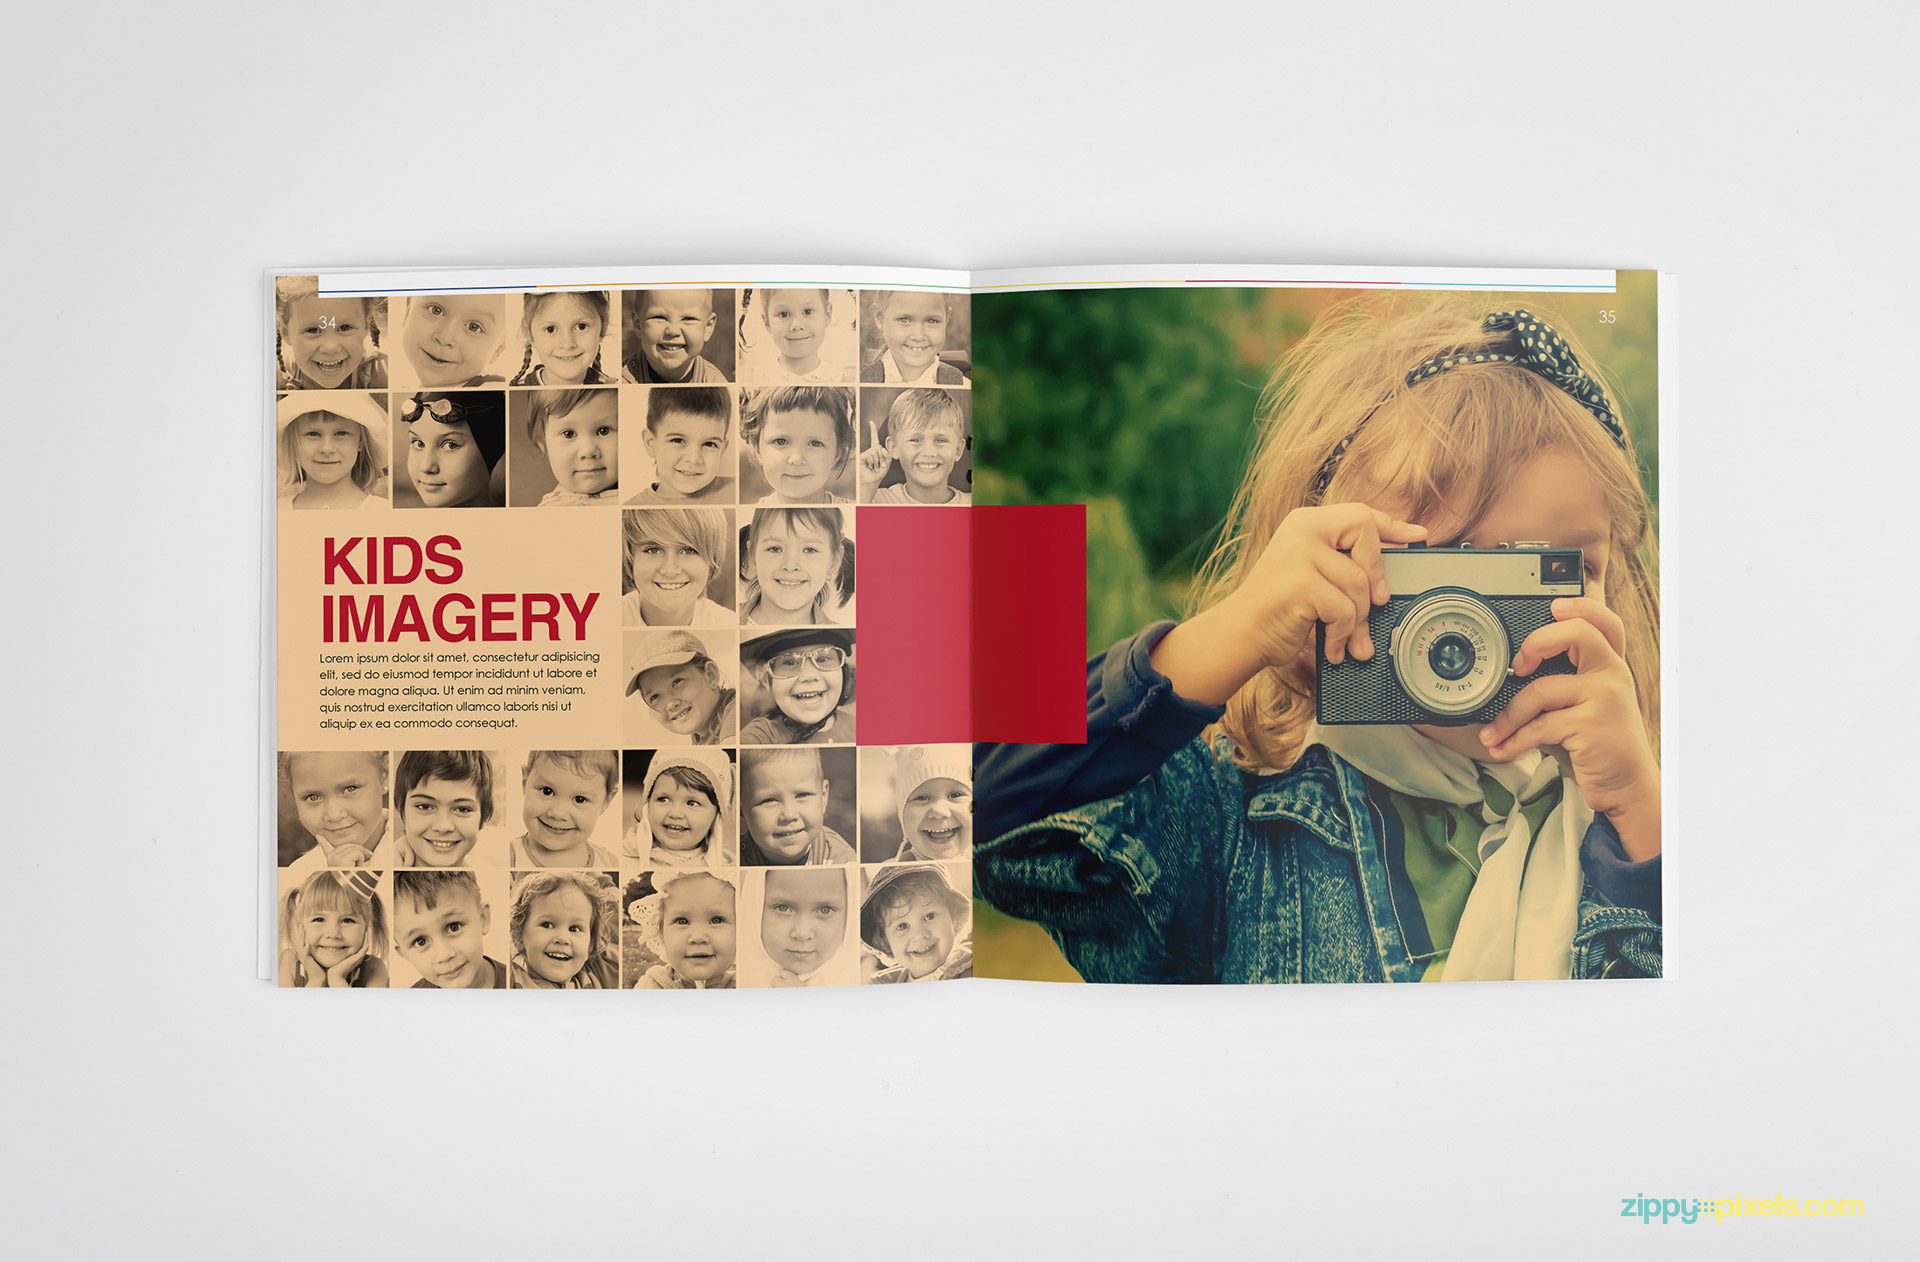 21-brand-book-12-kids-imagery